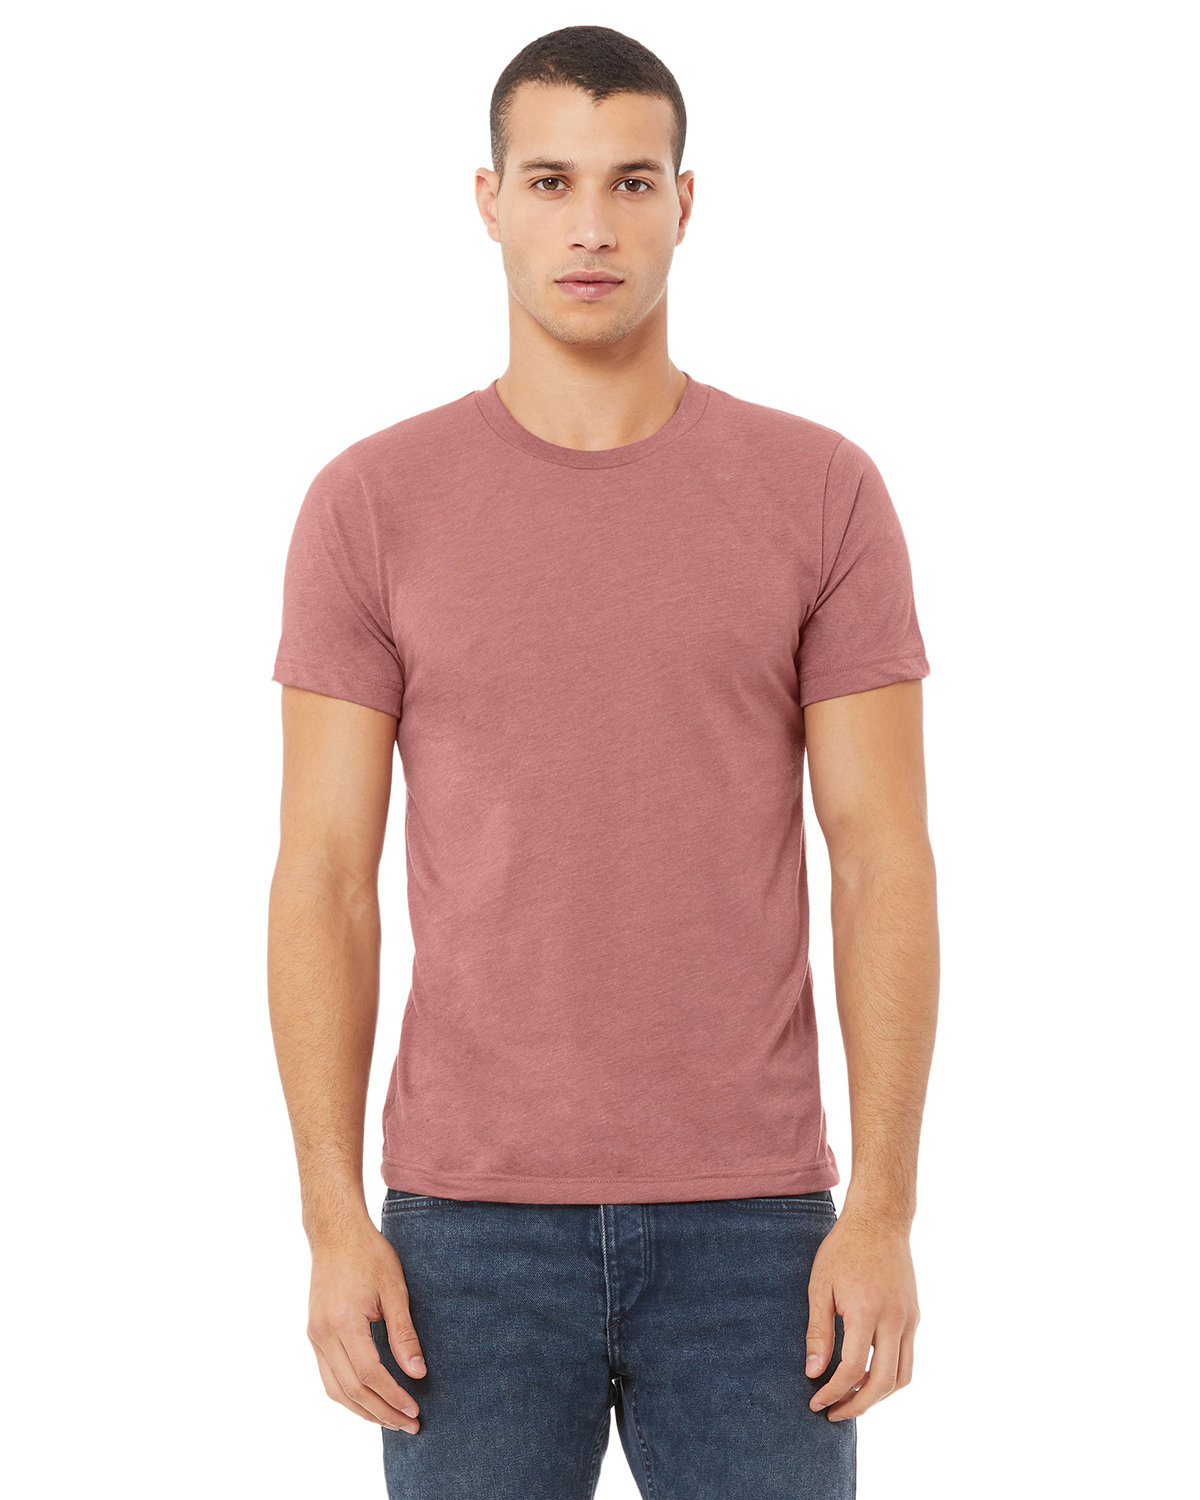 Bella + Canvas Unisex Heather CVC T-Shirt HEATHER MAUVE